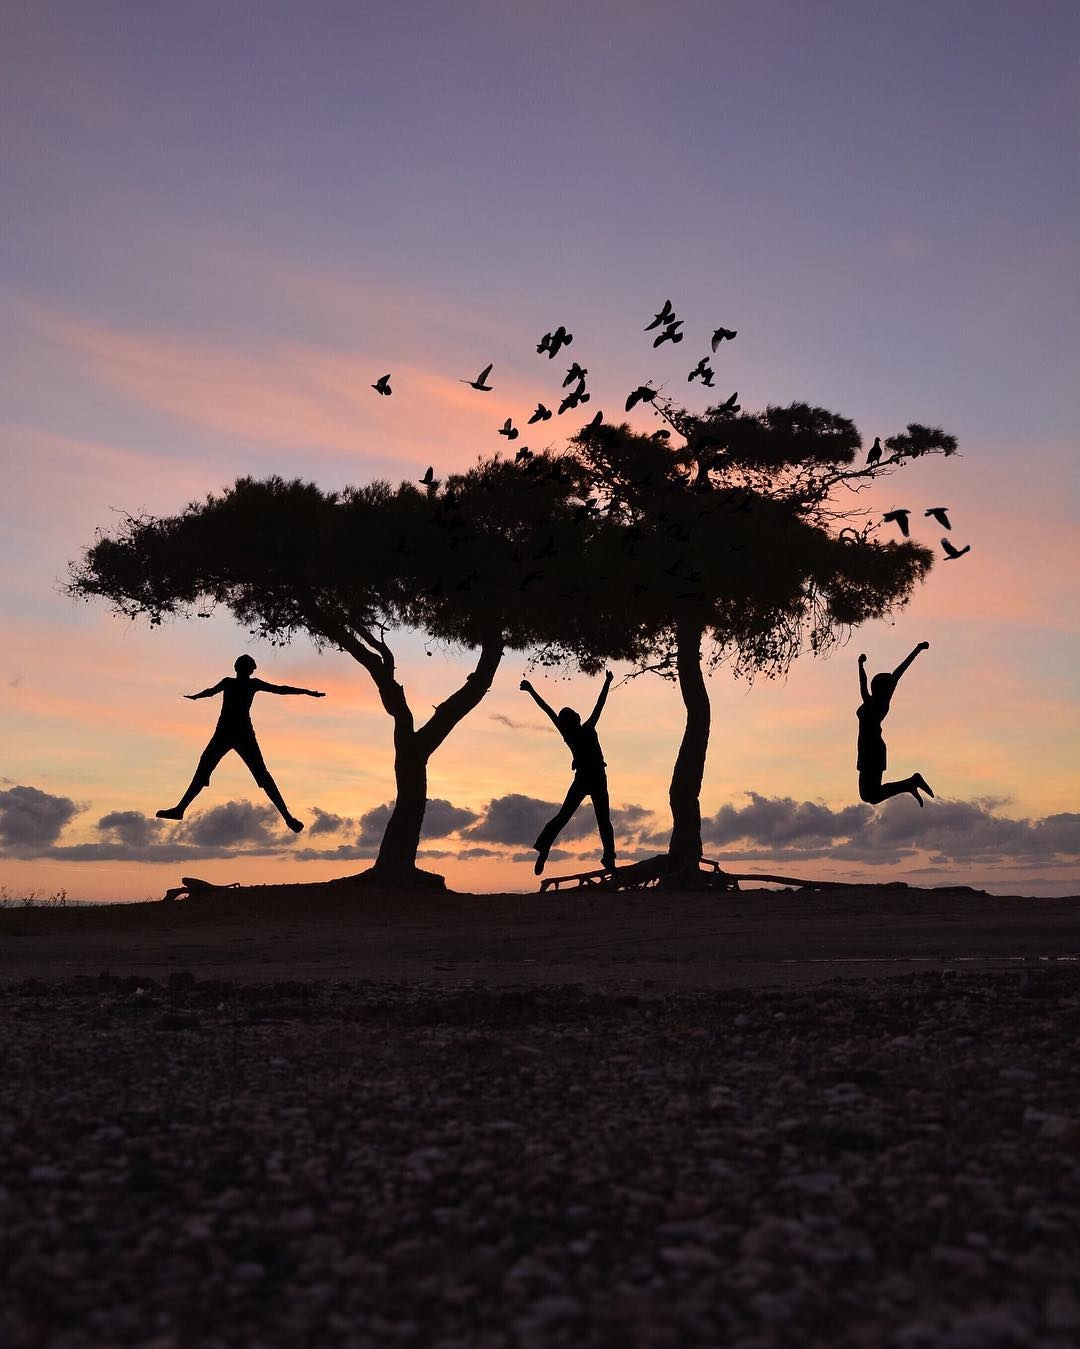 14-Jump-Higher-Dominic-Liam-Beautifully-Manipulated-Pictures-at-Sunrise-www-designstack-co